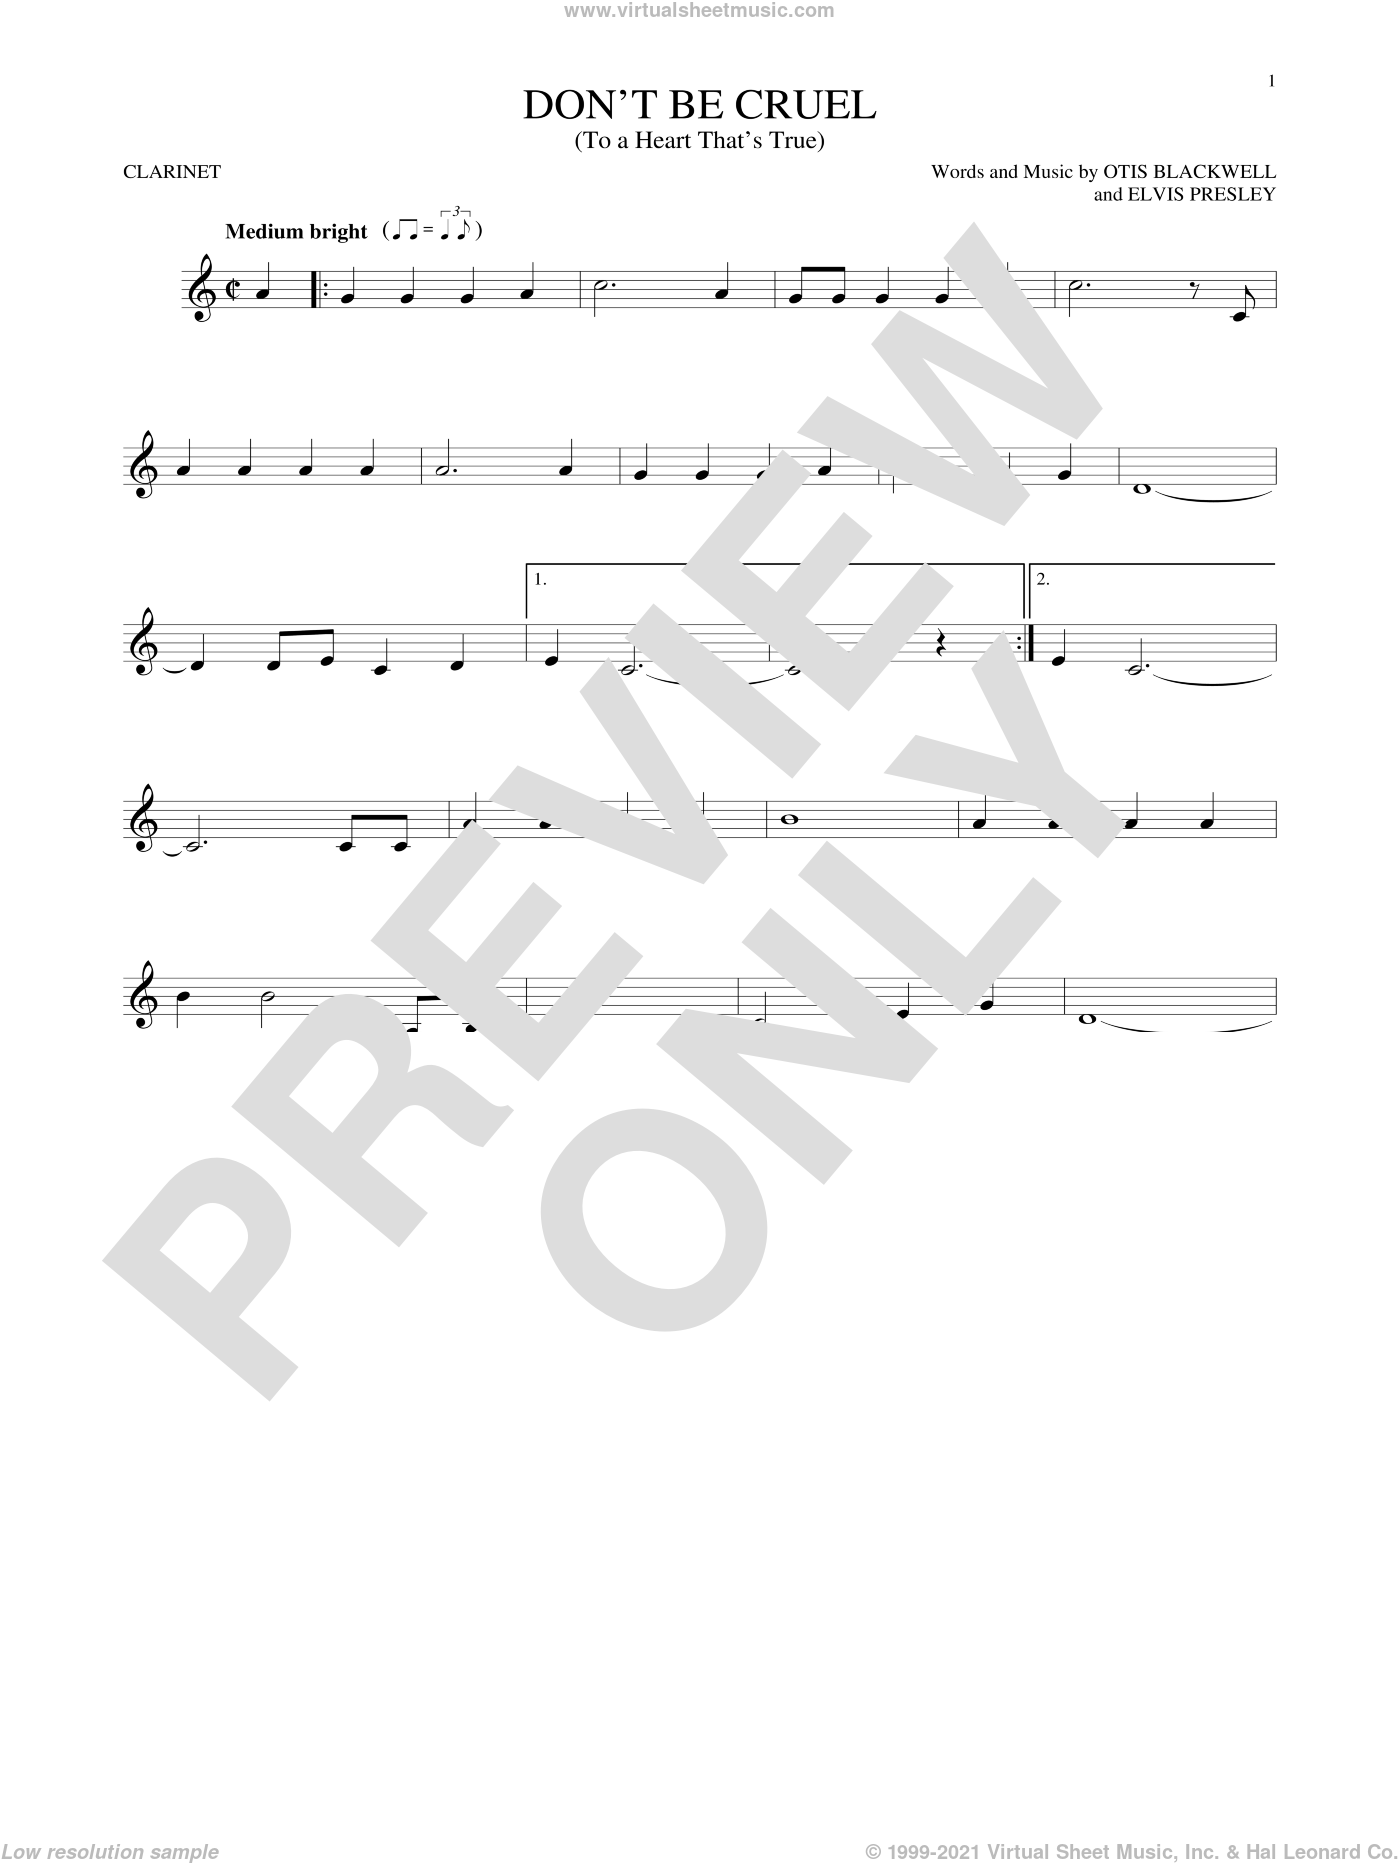 Don't Be Cruel (To A Heart That's True) sheet music for clarinet solo by Elvis Presley and Otis Blackwell, intermediate skill level